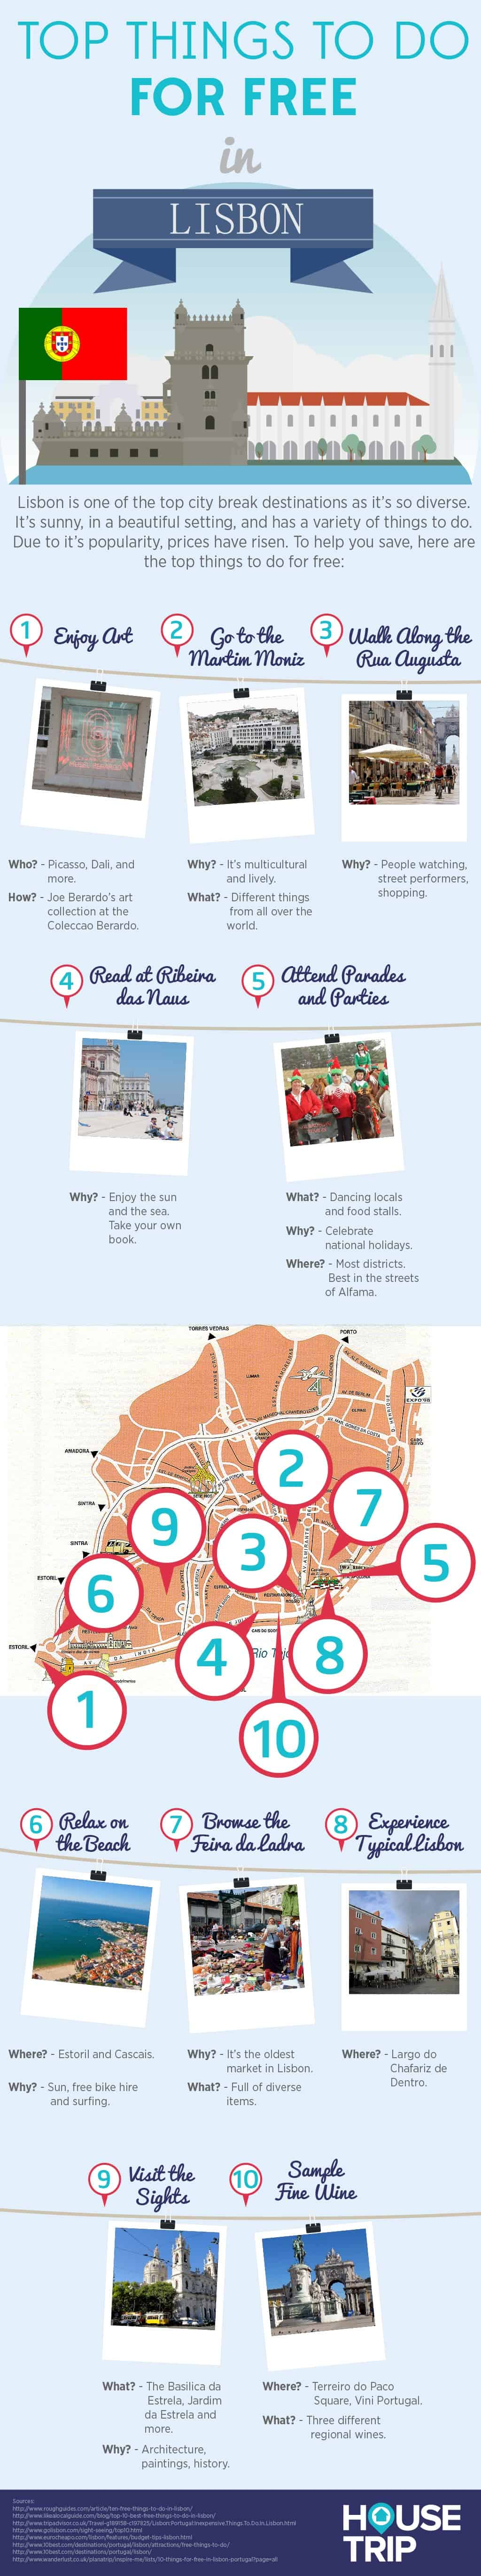 HouseTrip Infographic Lisbon v3.0 1 - Free Things to Do In Lisbon